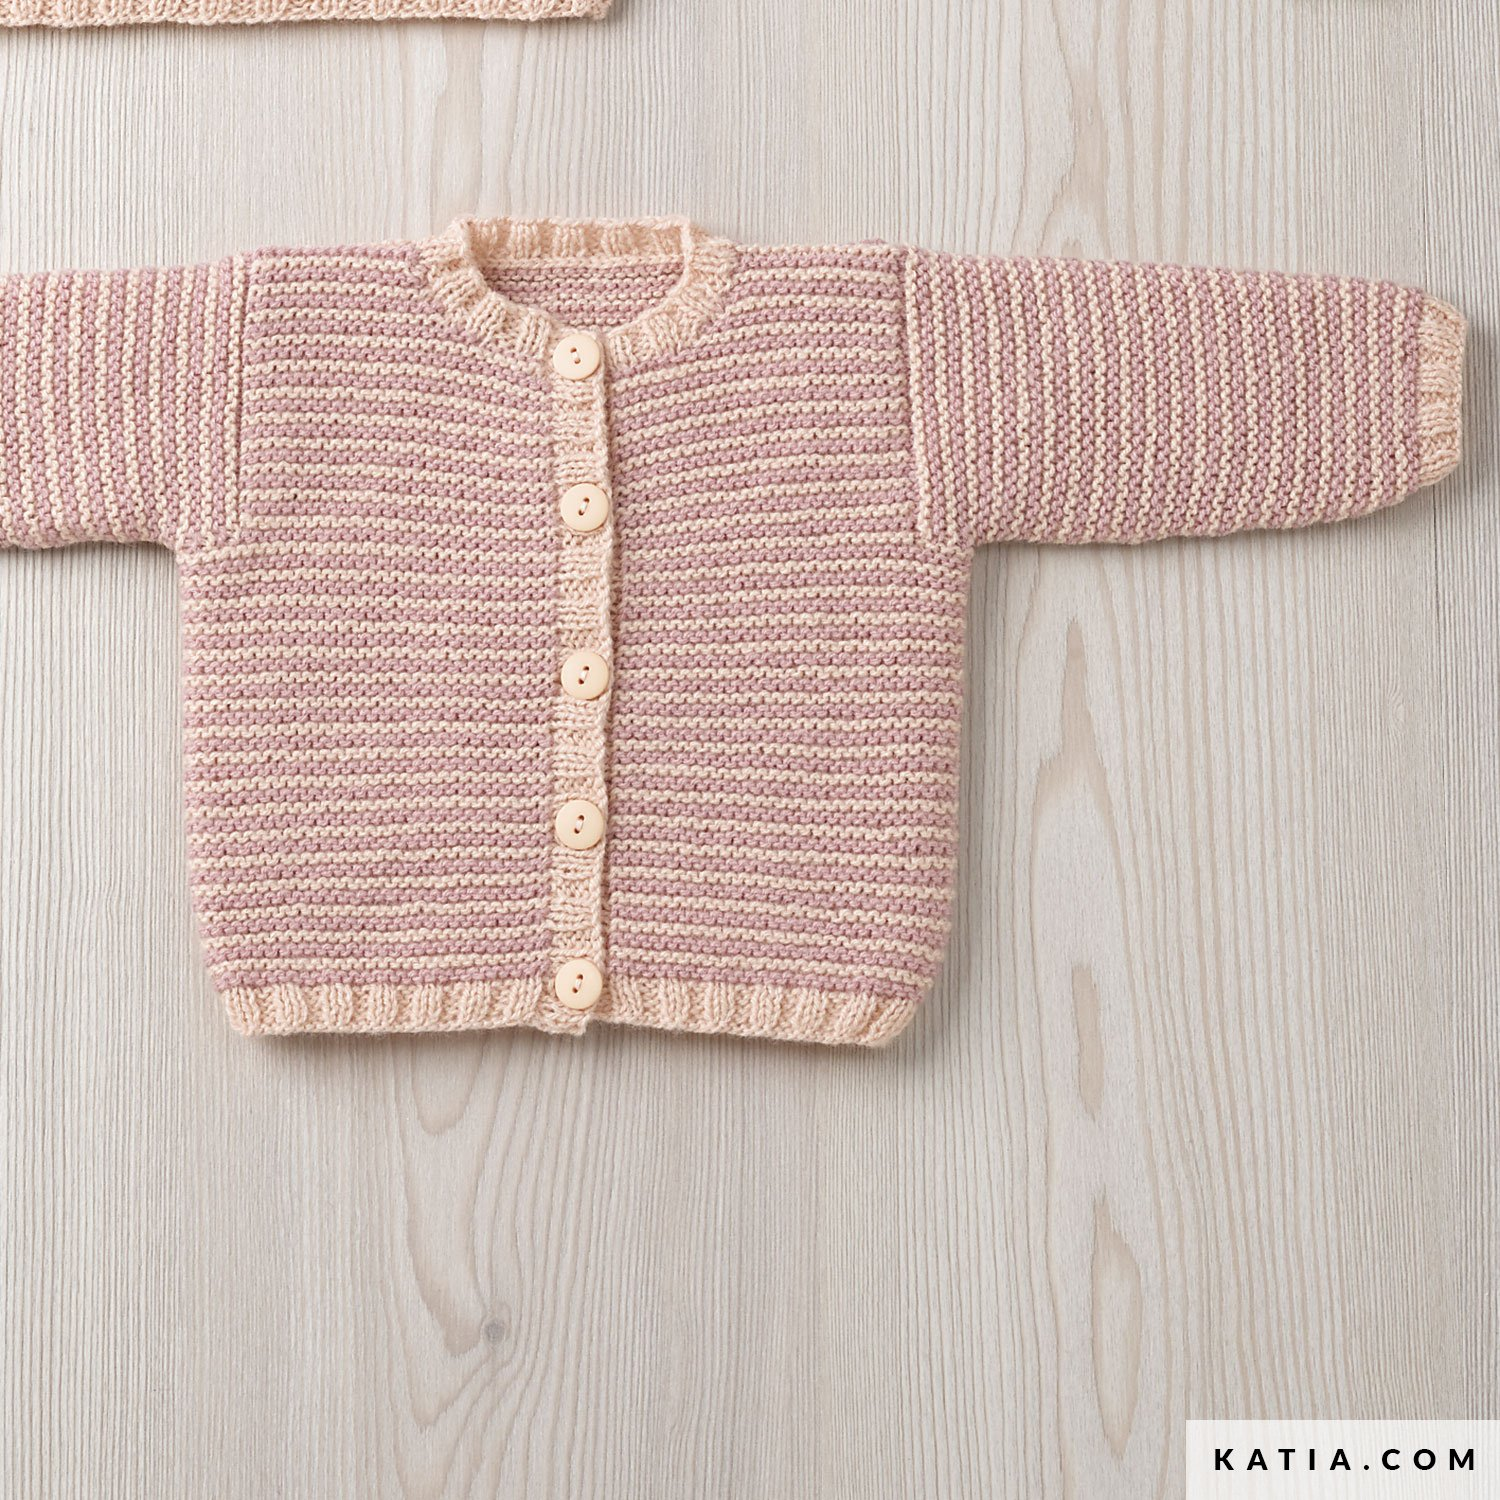 Jacket Baby Autumn Winter Models Patterns Katia Com